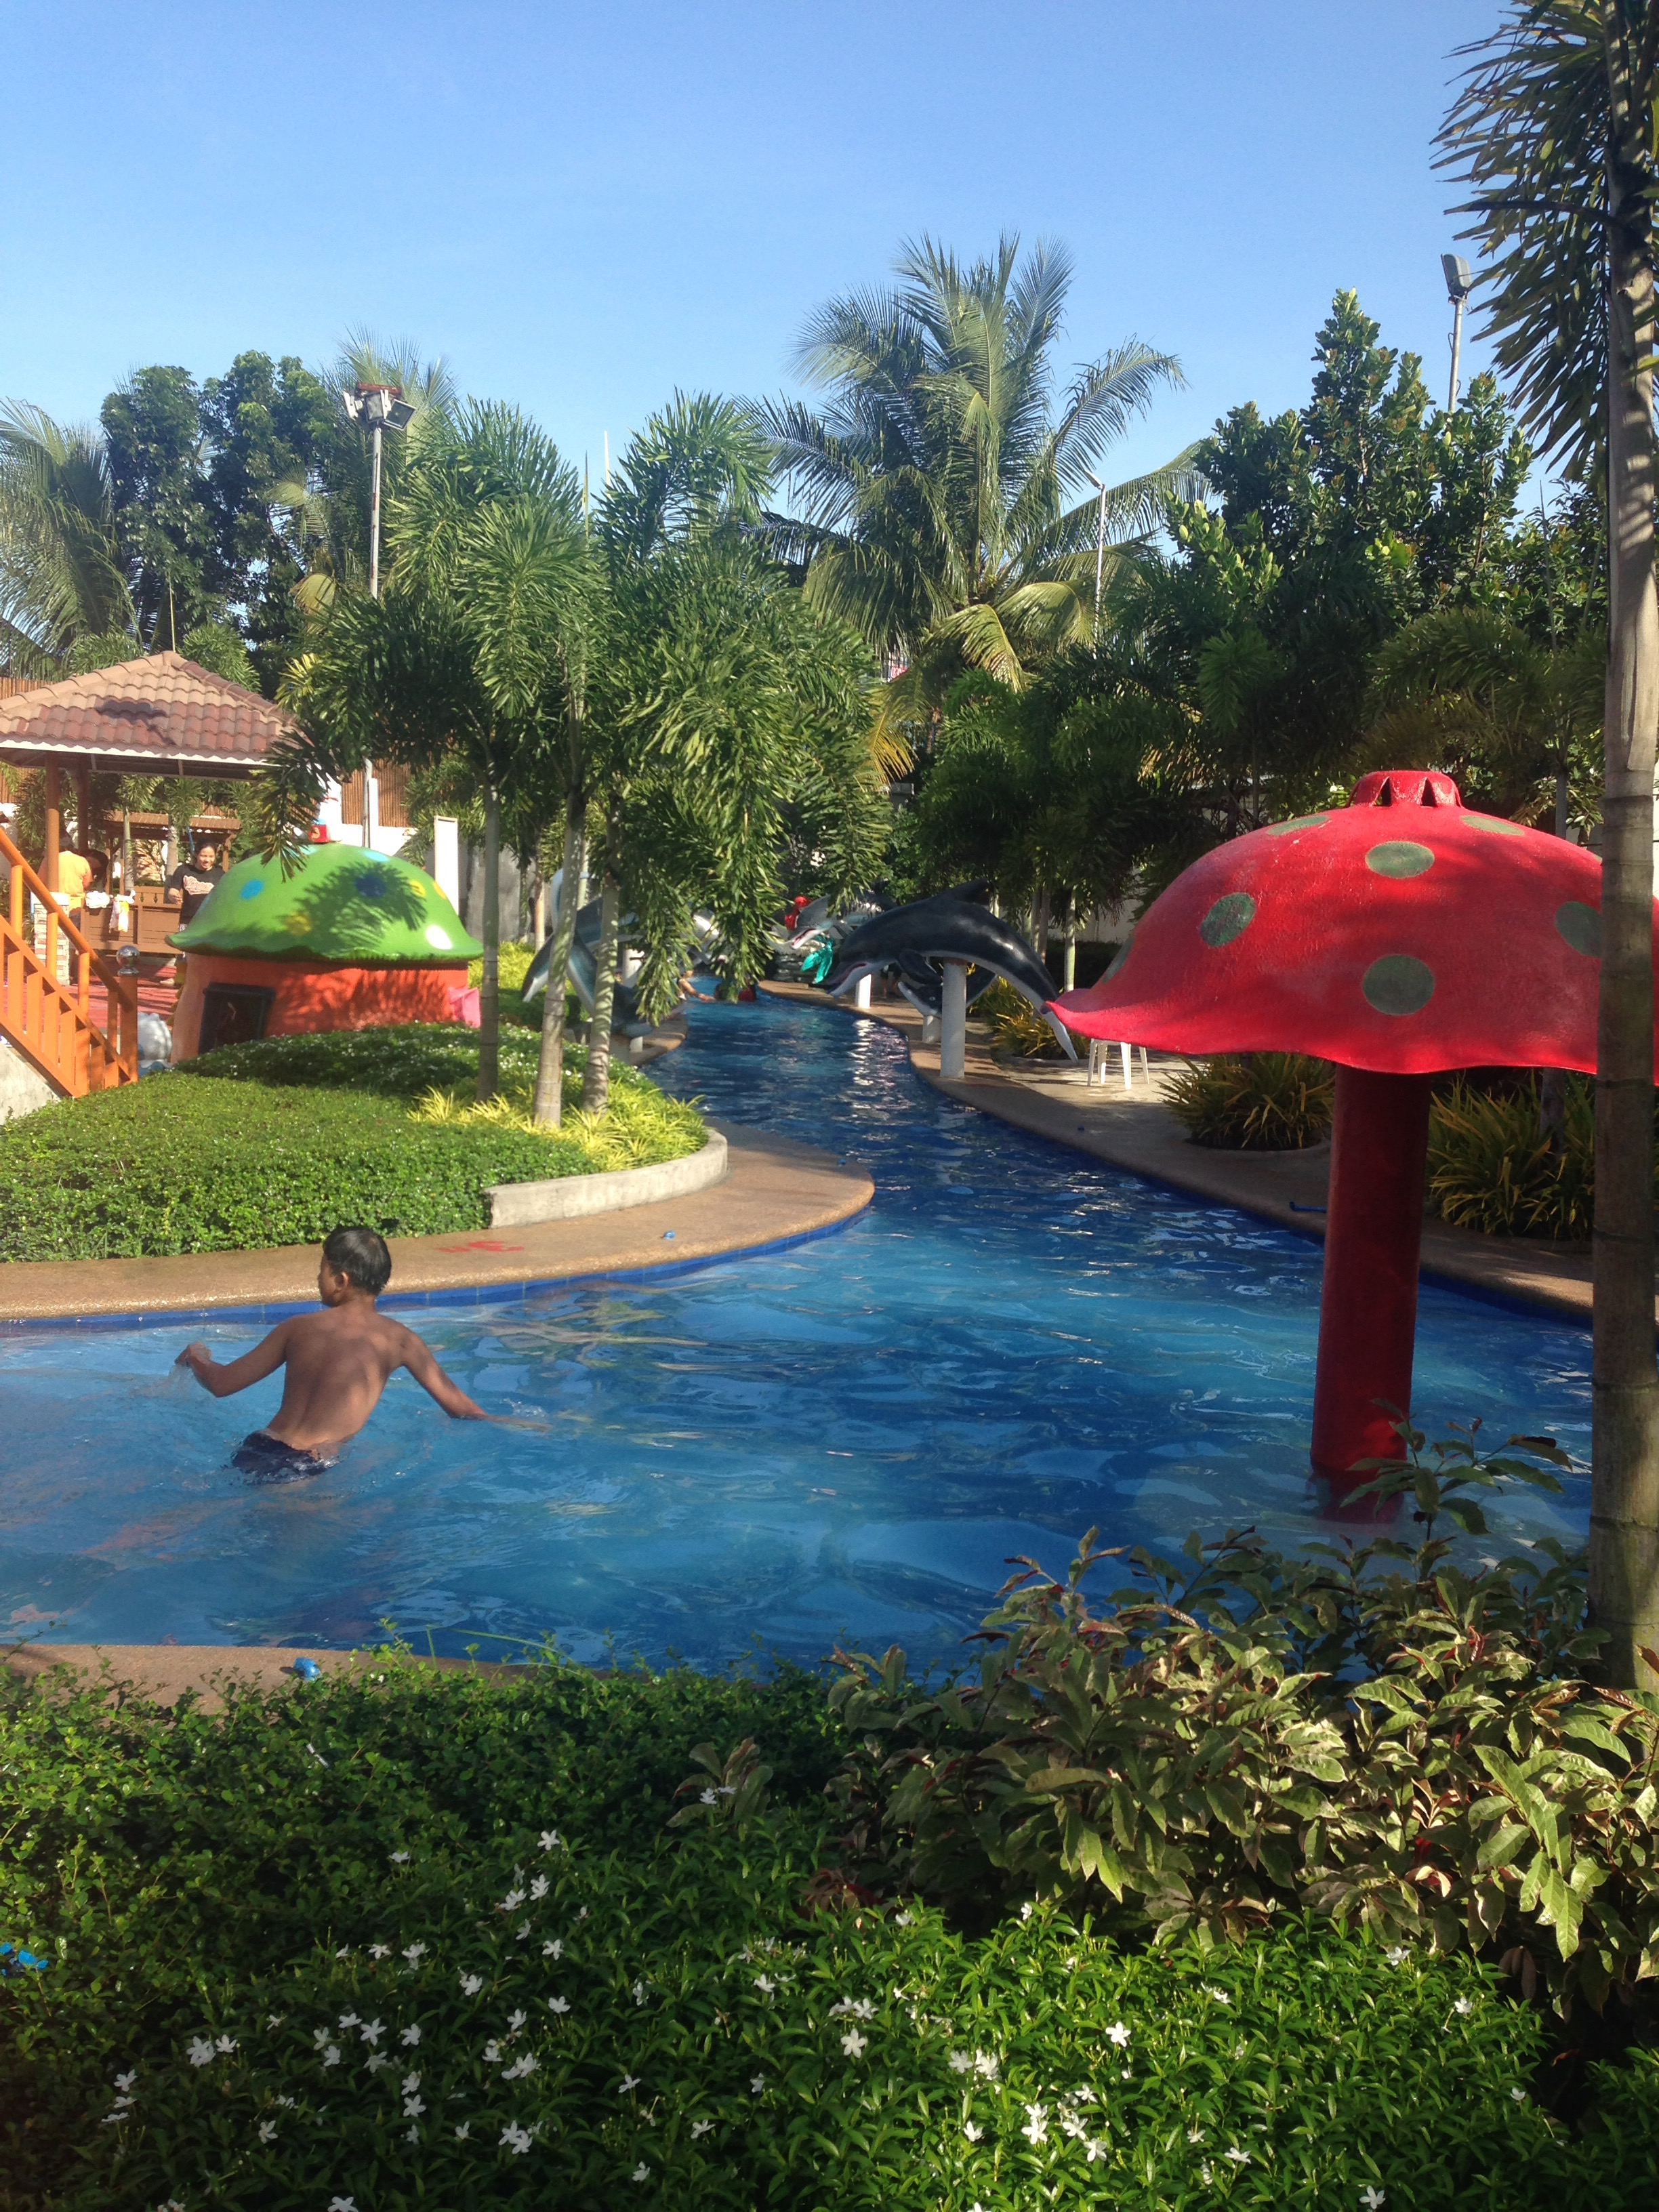 Rio s 2nd birthday celebration at tubigan garden resort for Pool garden resort argao